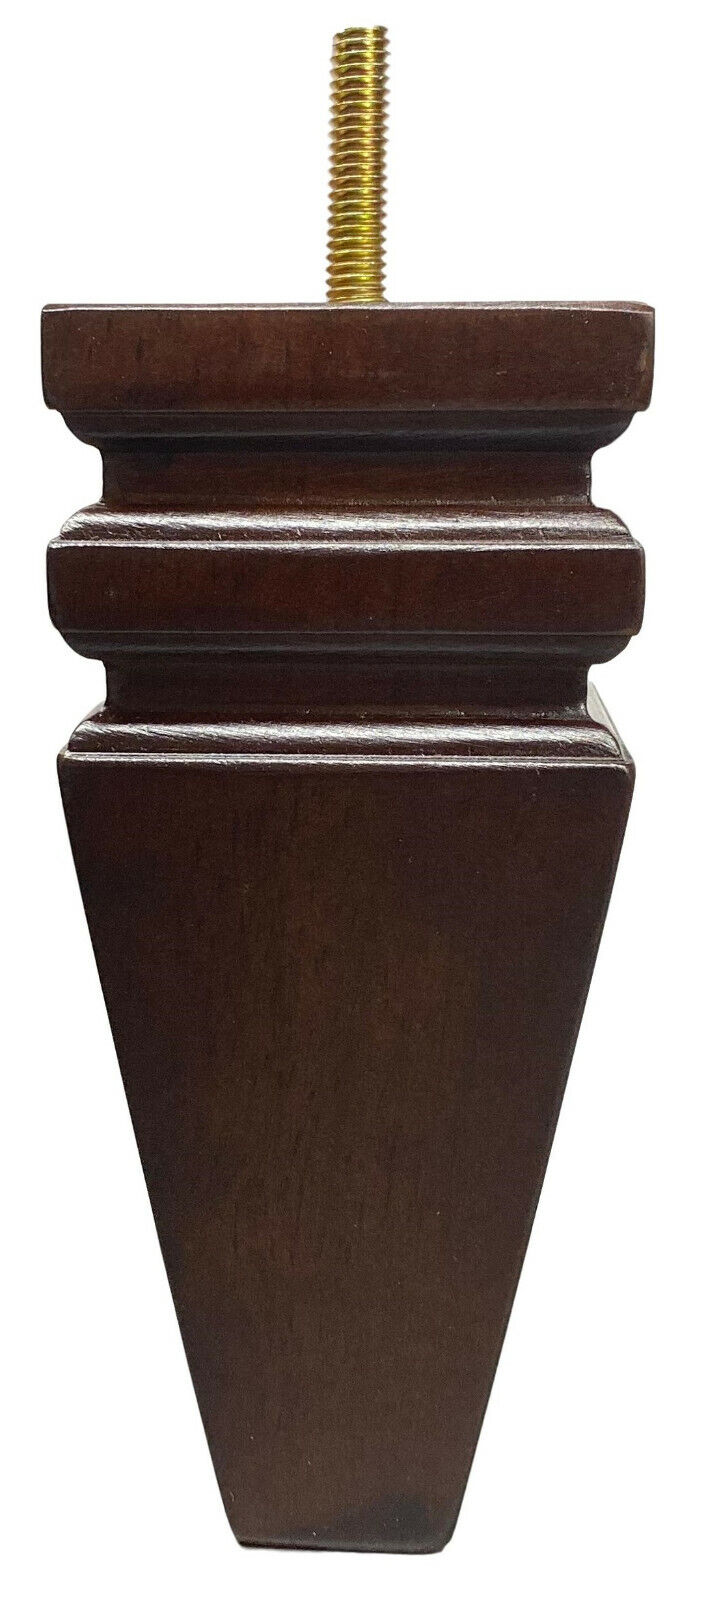 6″ Carved Squared Walnut Tapered Pyramid Sofa/Couch/Chair Wood Legs – Set of 4 Furniture